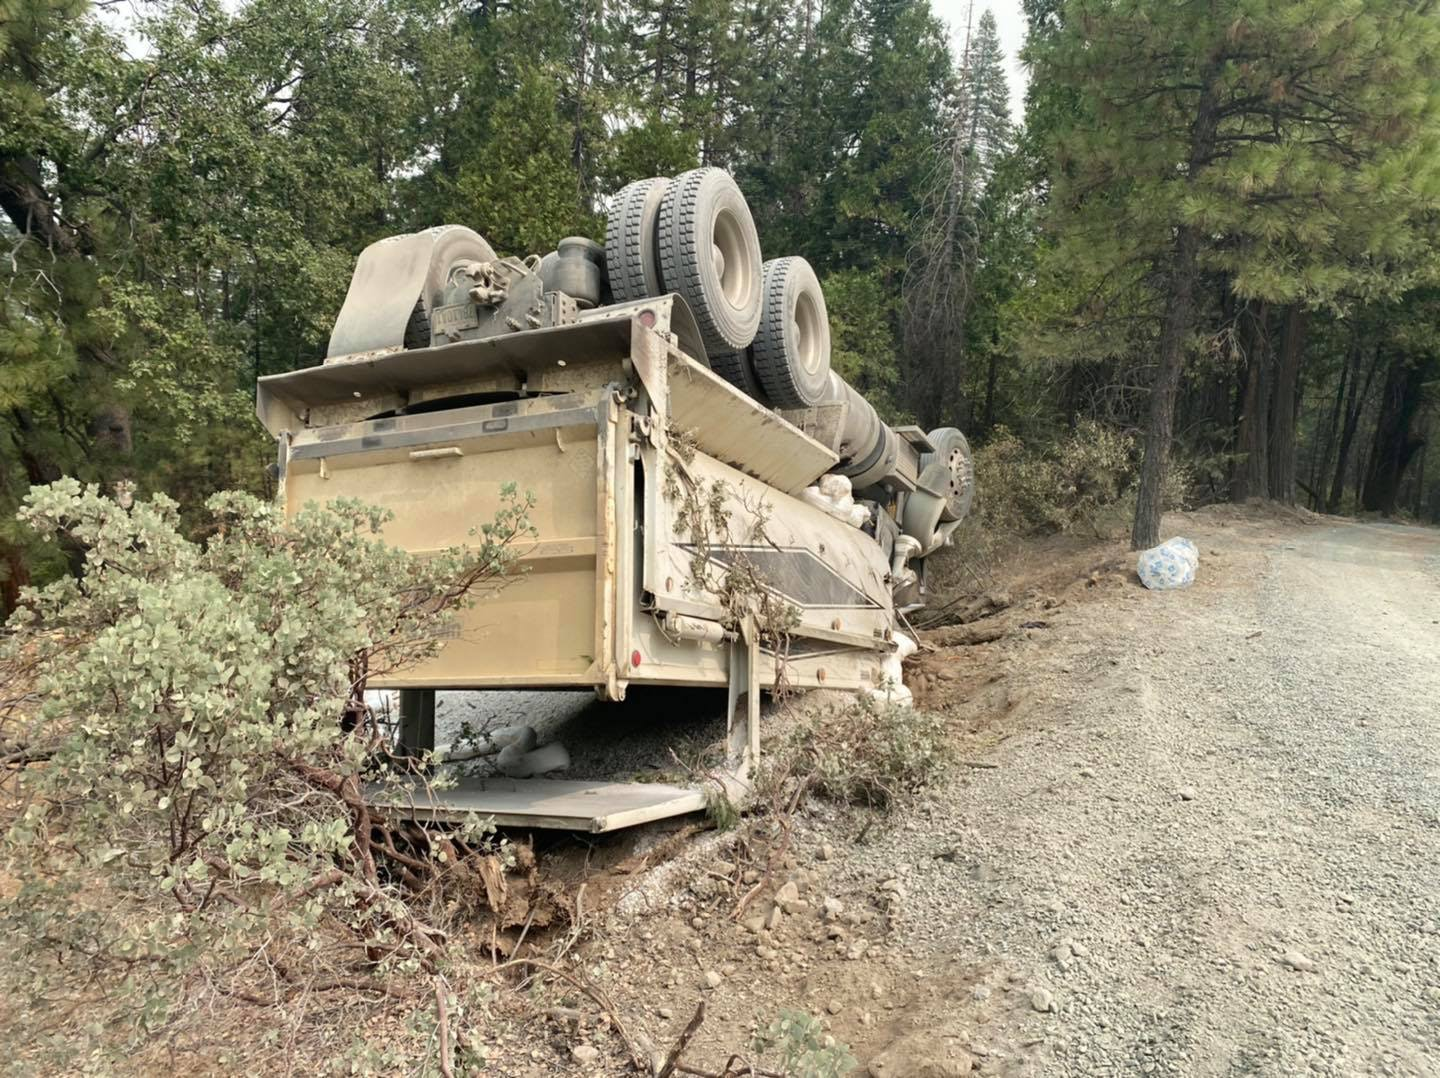 September 2020 - Responded to an overturn truck accident with injury.